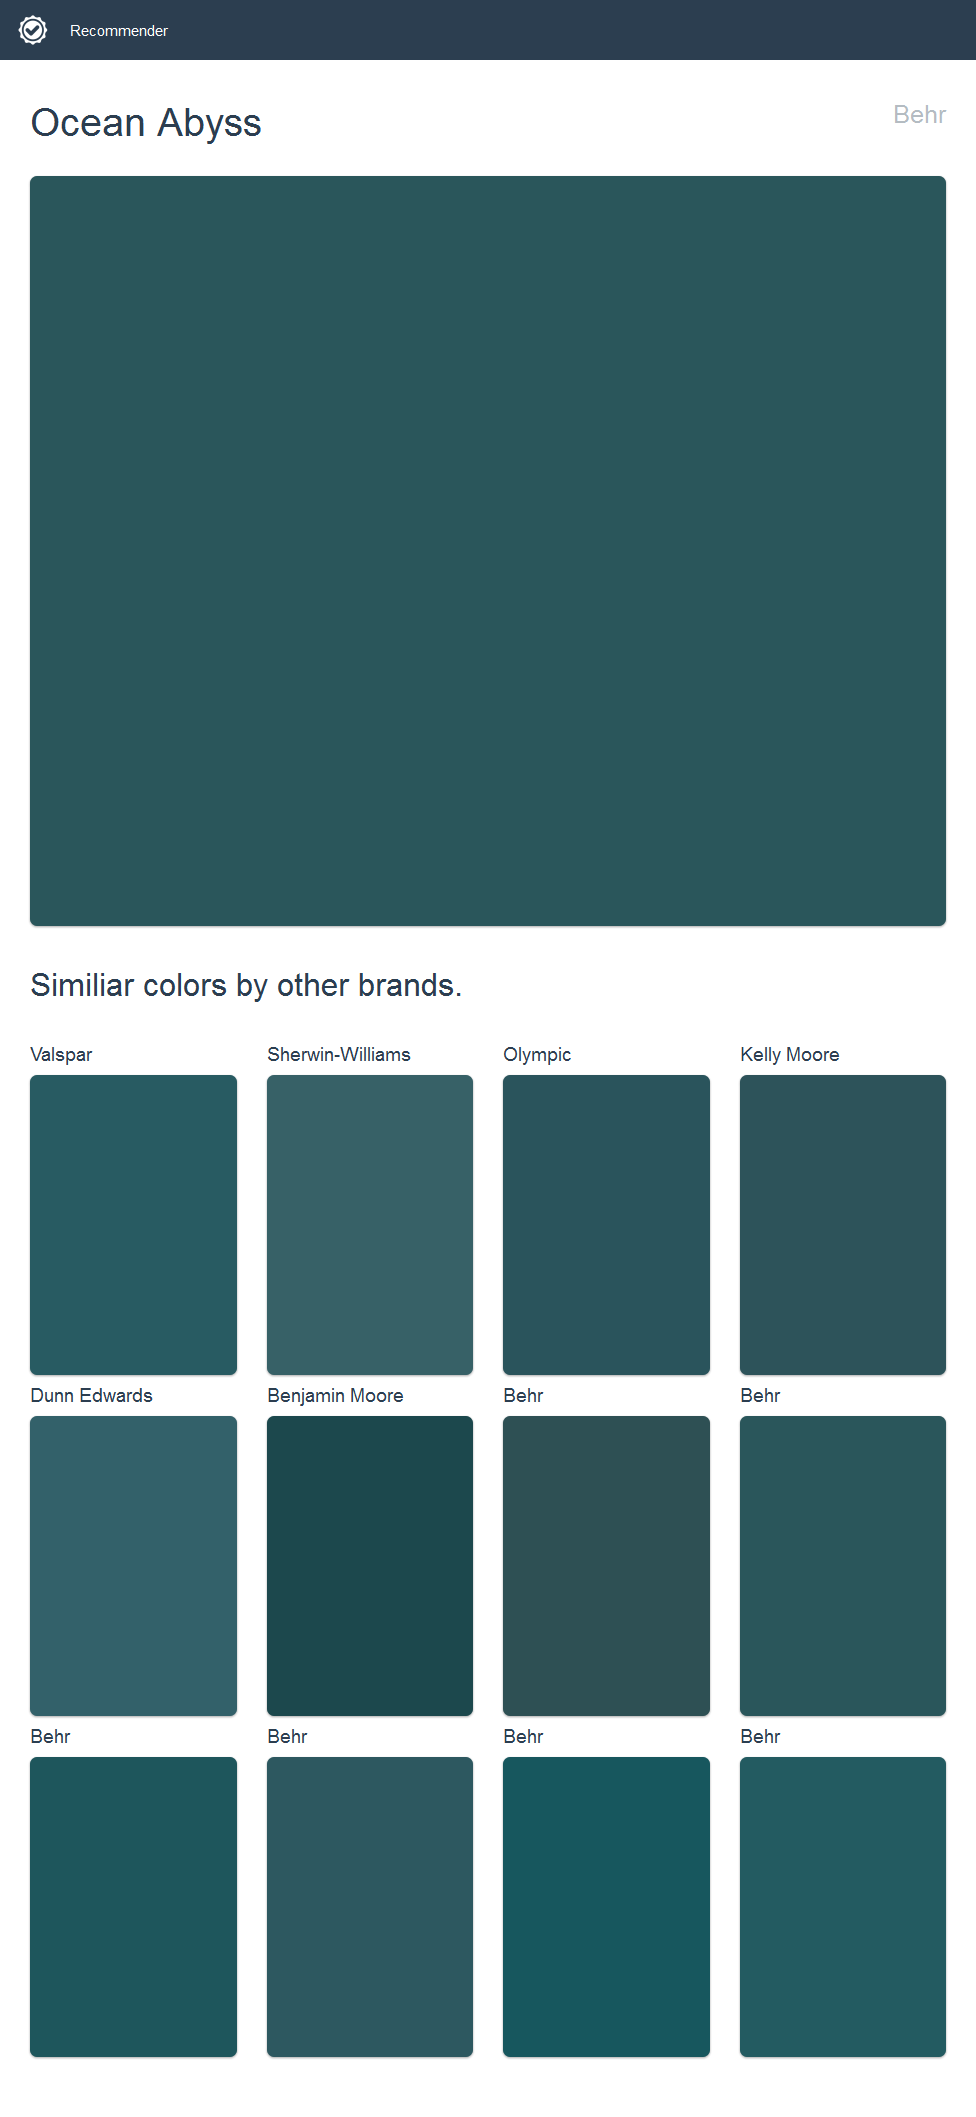 Ocean Abyss Behr Click The Image To See Similiar Colors By Other Brands House Paint Exterior Dutch Boy Paint Olympic Paint